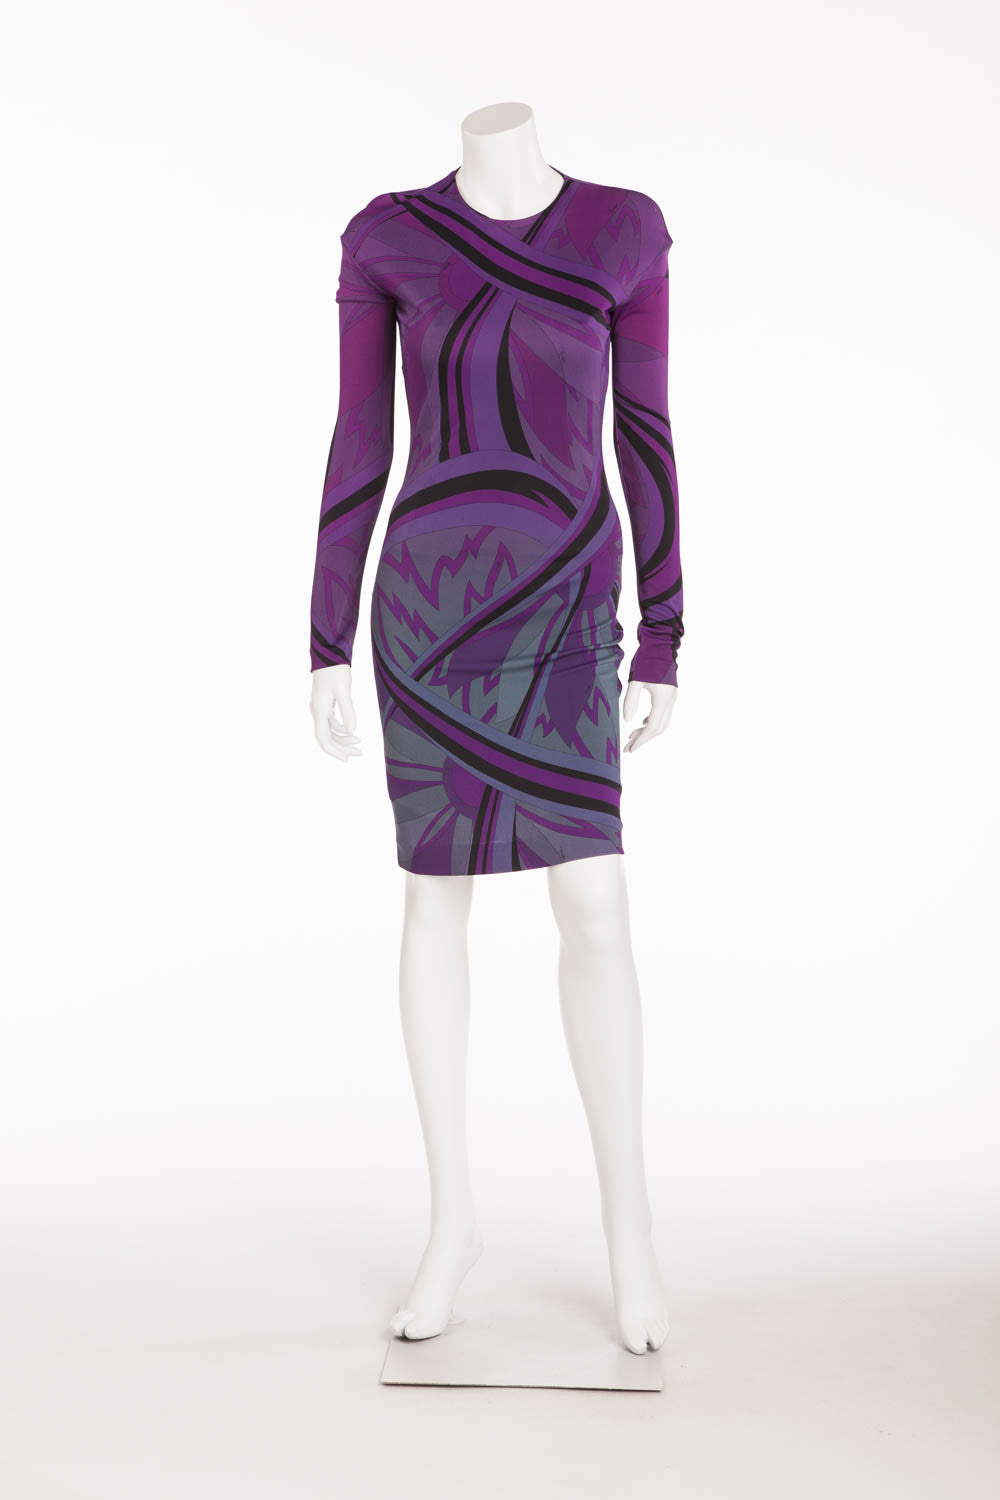 Emilio Pucci - NWT Long Sleeve Purple Mini Dress - IT 42